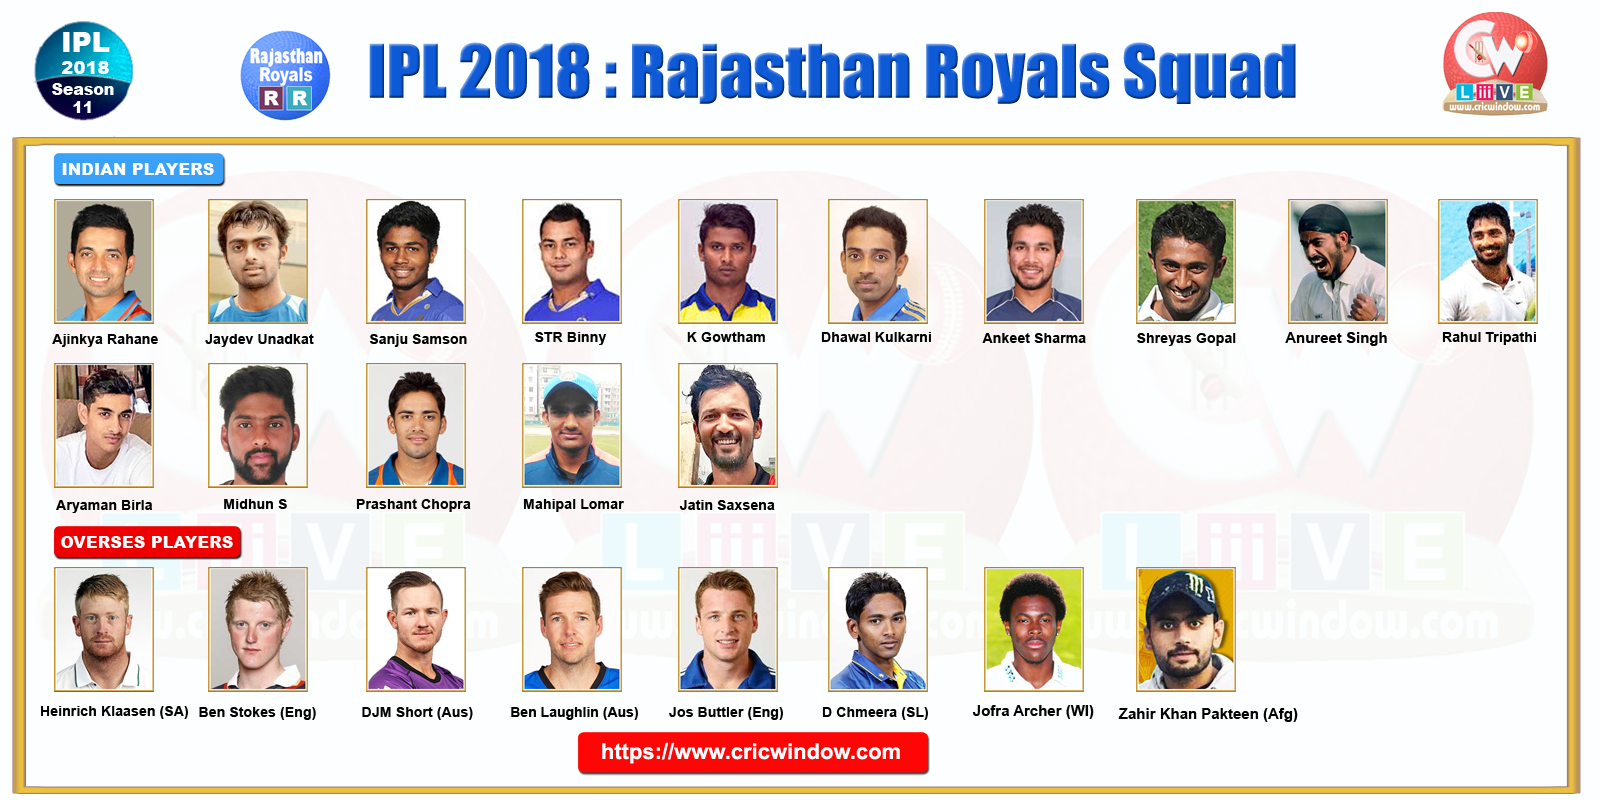 Rajasthan Royals team 2018